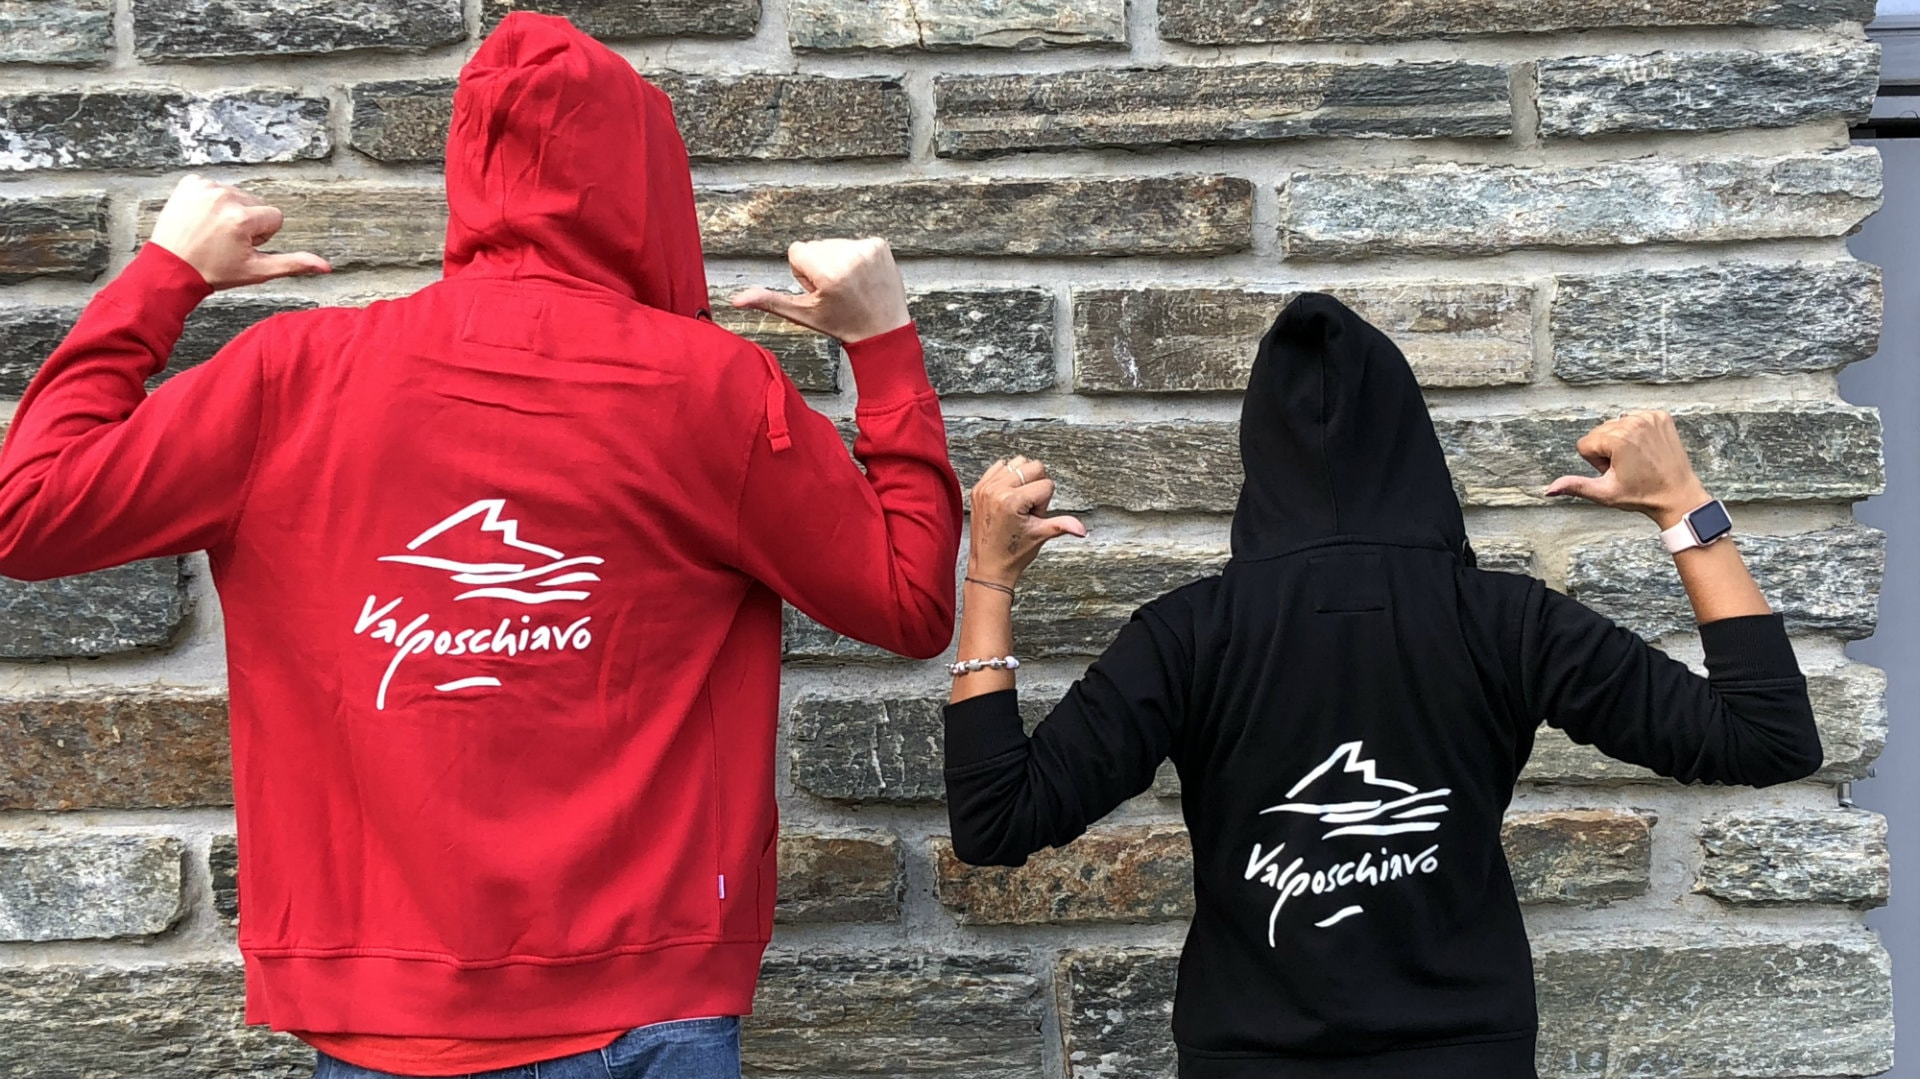 valposchiavo blog merchandising 1